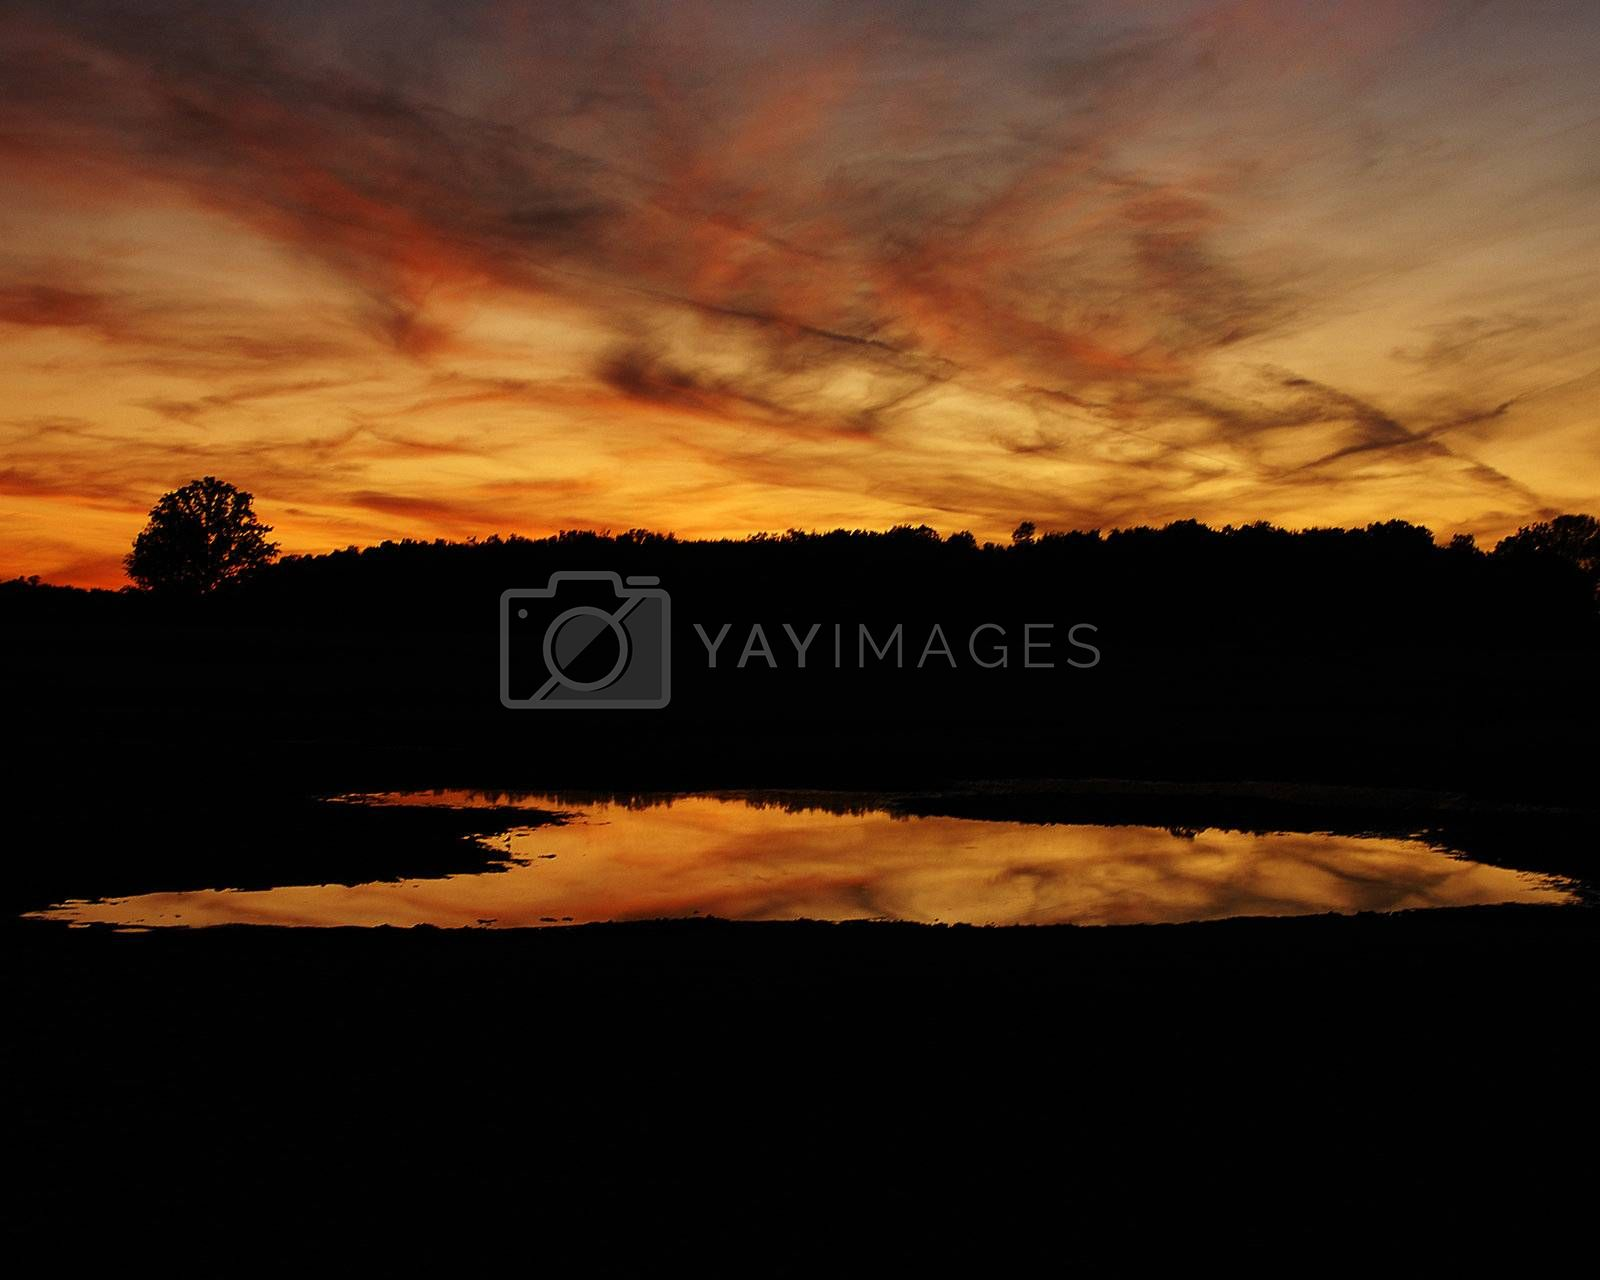 Royalty free image of Sunset by chimmi